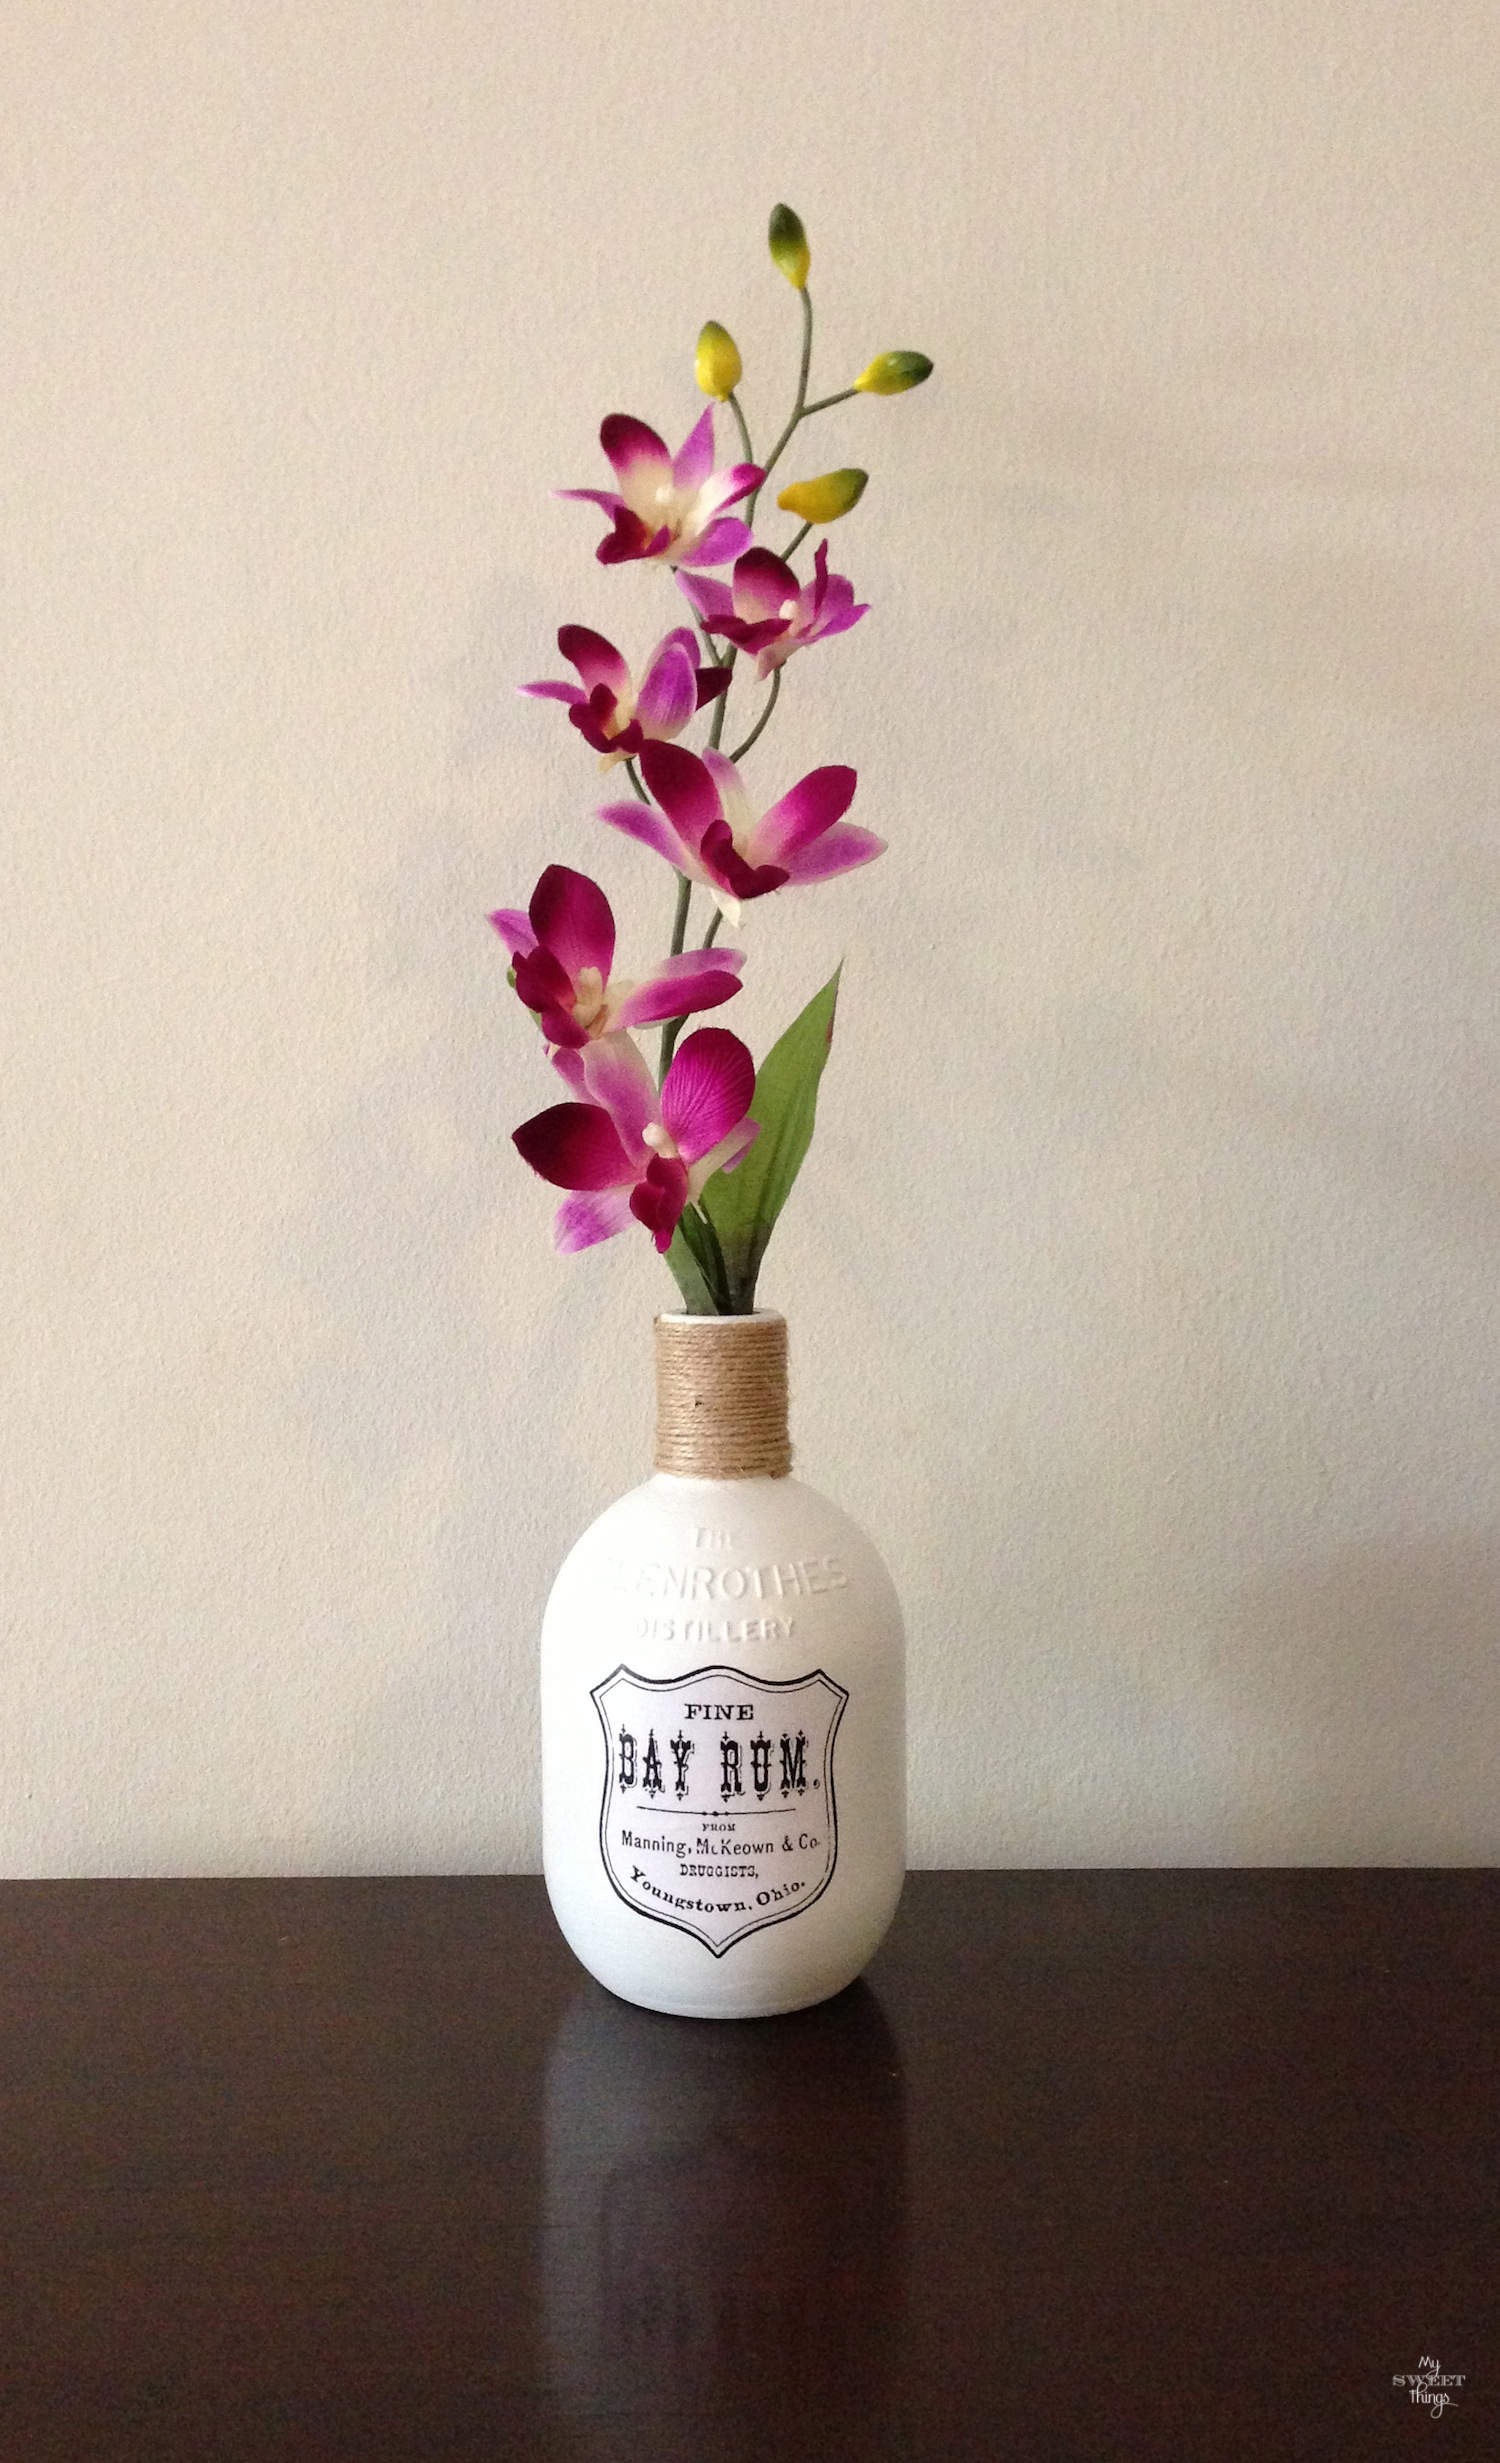 Empty bottled upcycled into a flower vase - Jarrón %22Bay Rum%22